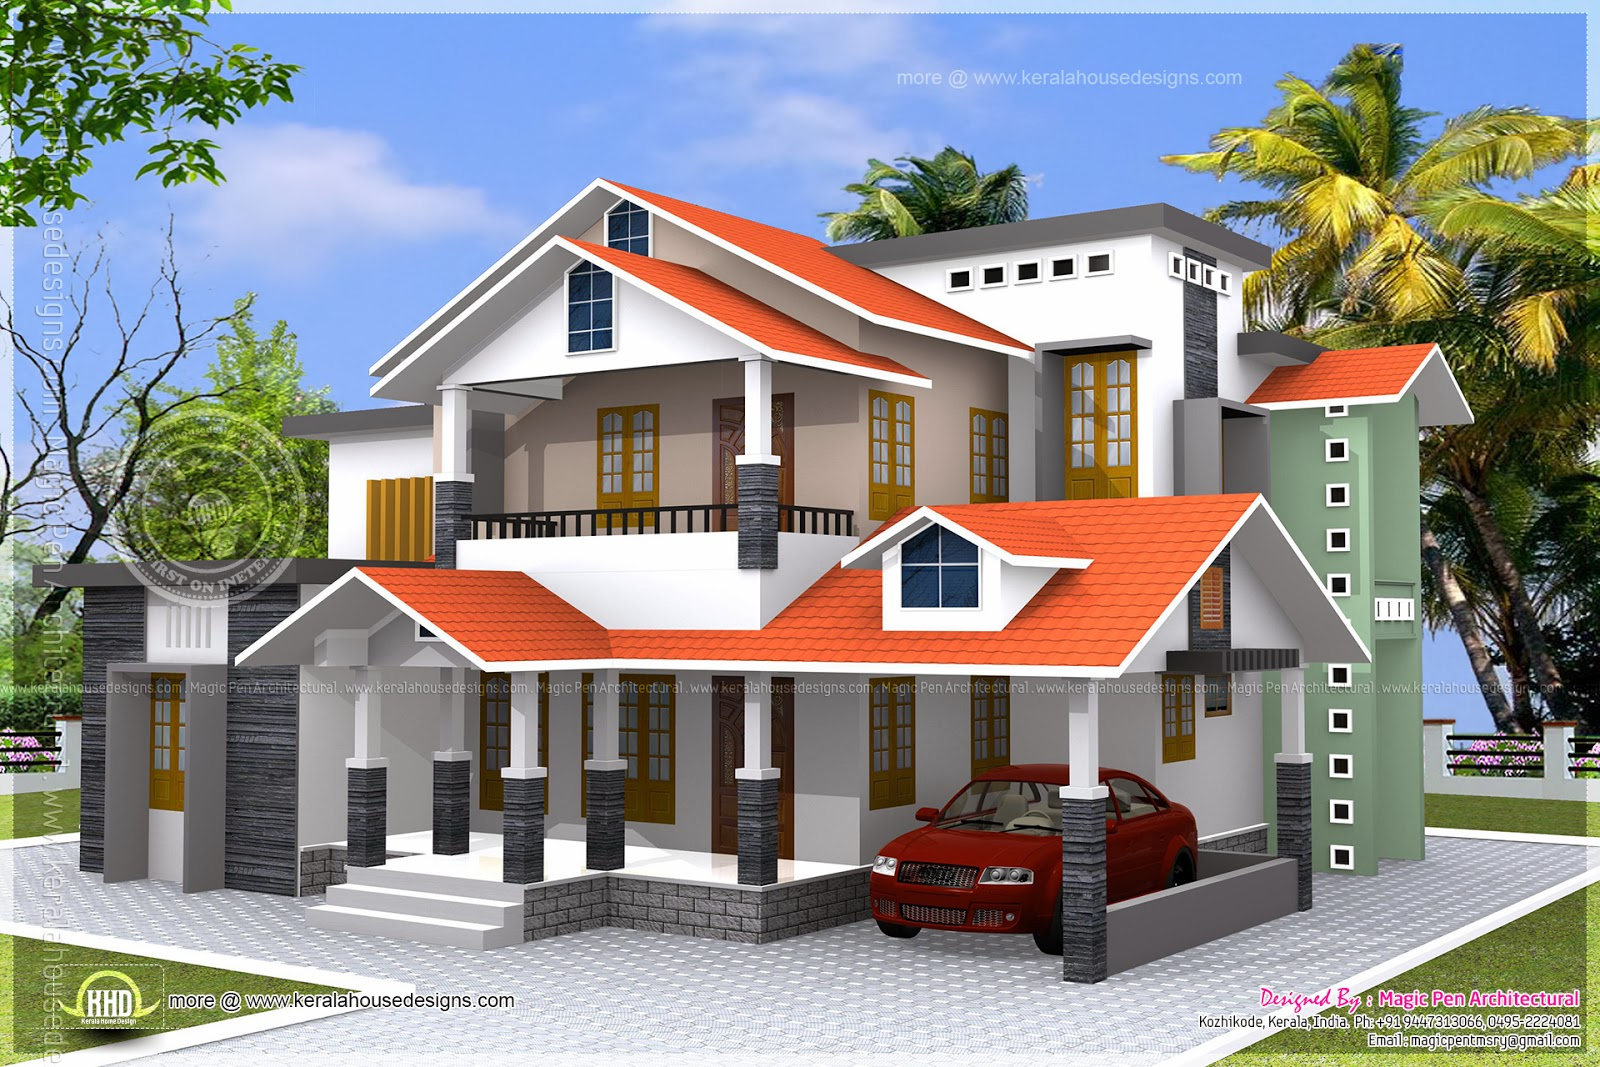 2945 square feet 4 bhk house exterior home kerala plans Kerala style house exterior designs